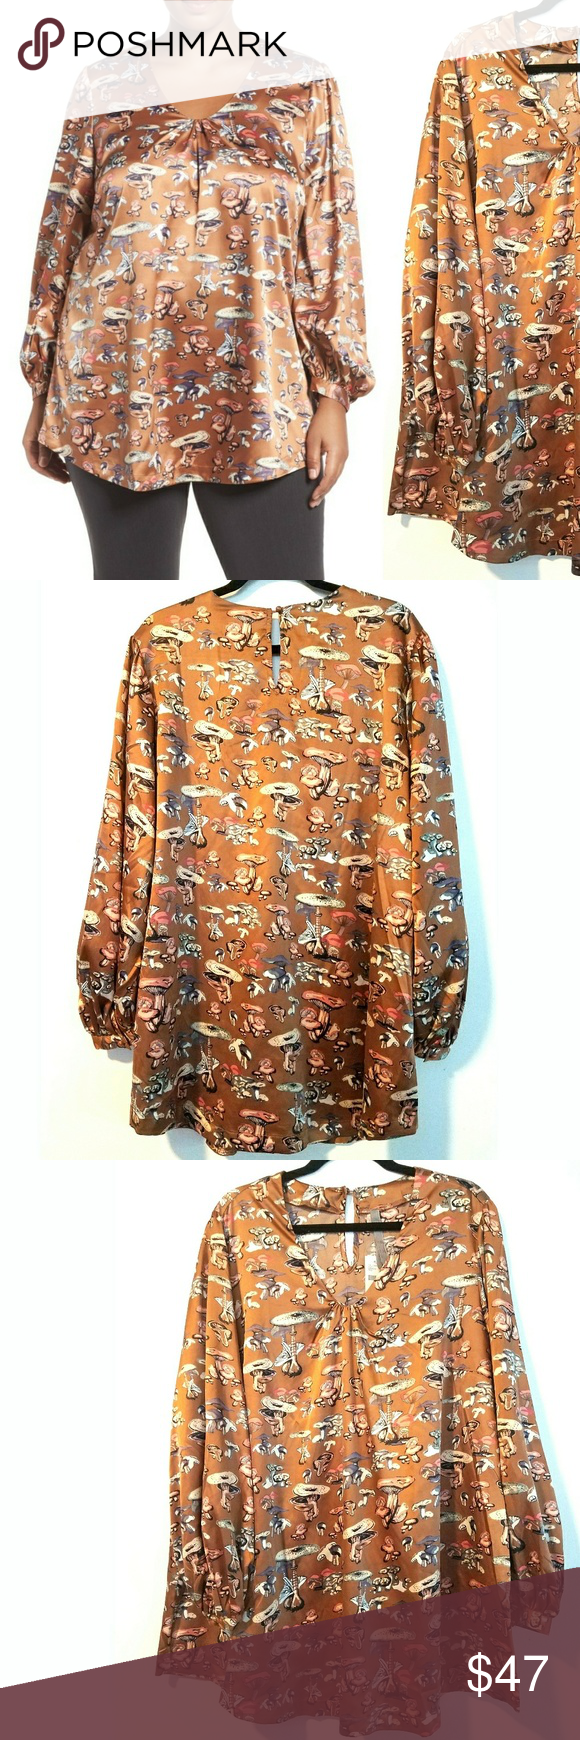 b9143a7d309 2X Melissa McCarthy Seven7 Mushroom Print Top NWT This 2X Melissa McCarthy  Seven7 Mushroom Print Top is NEW with Tags.